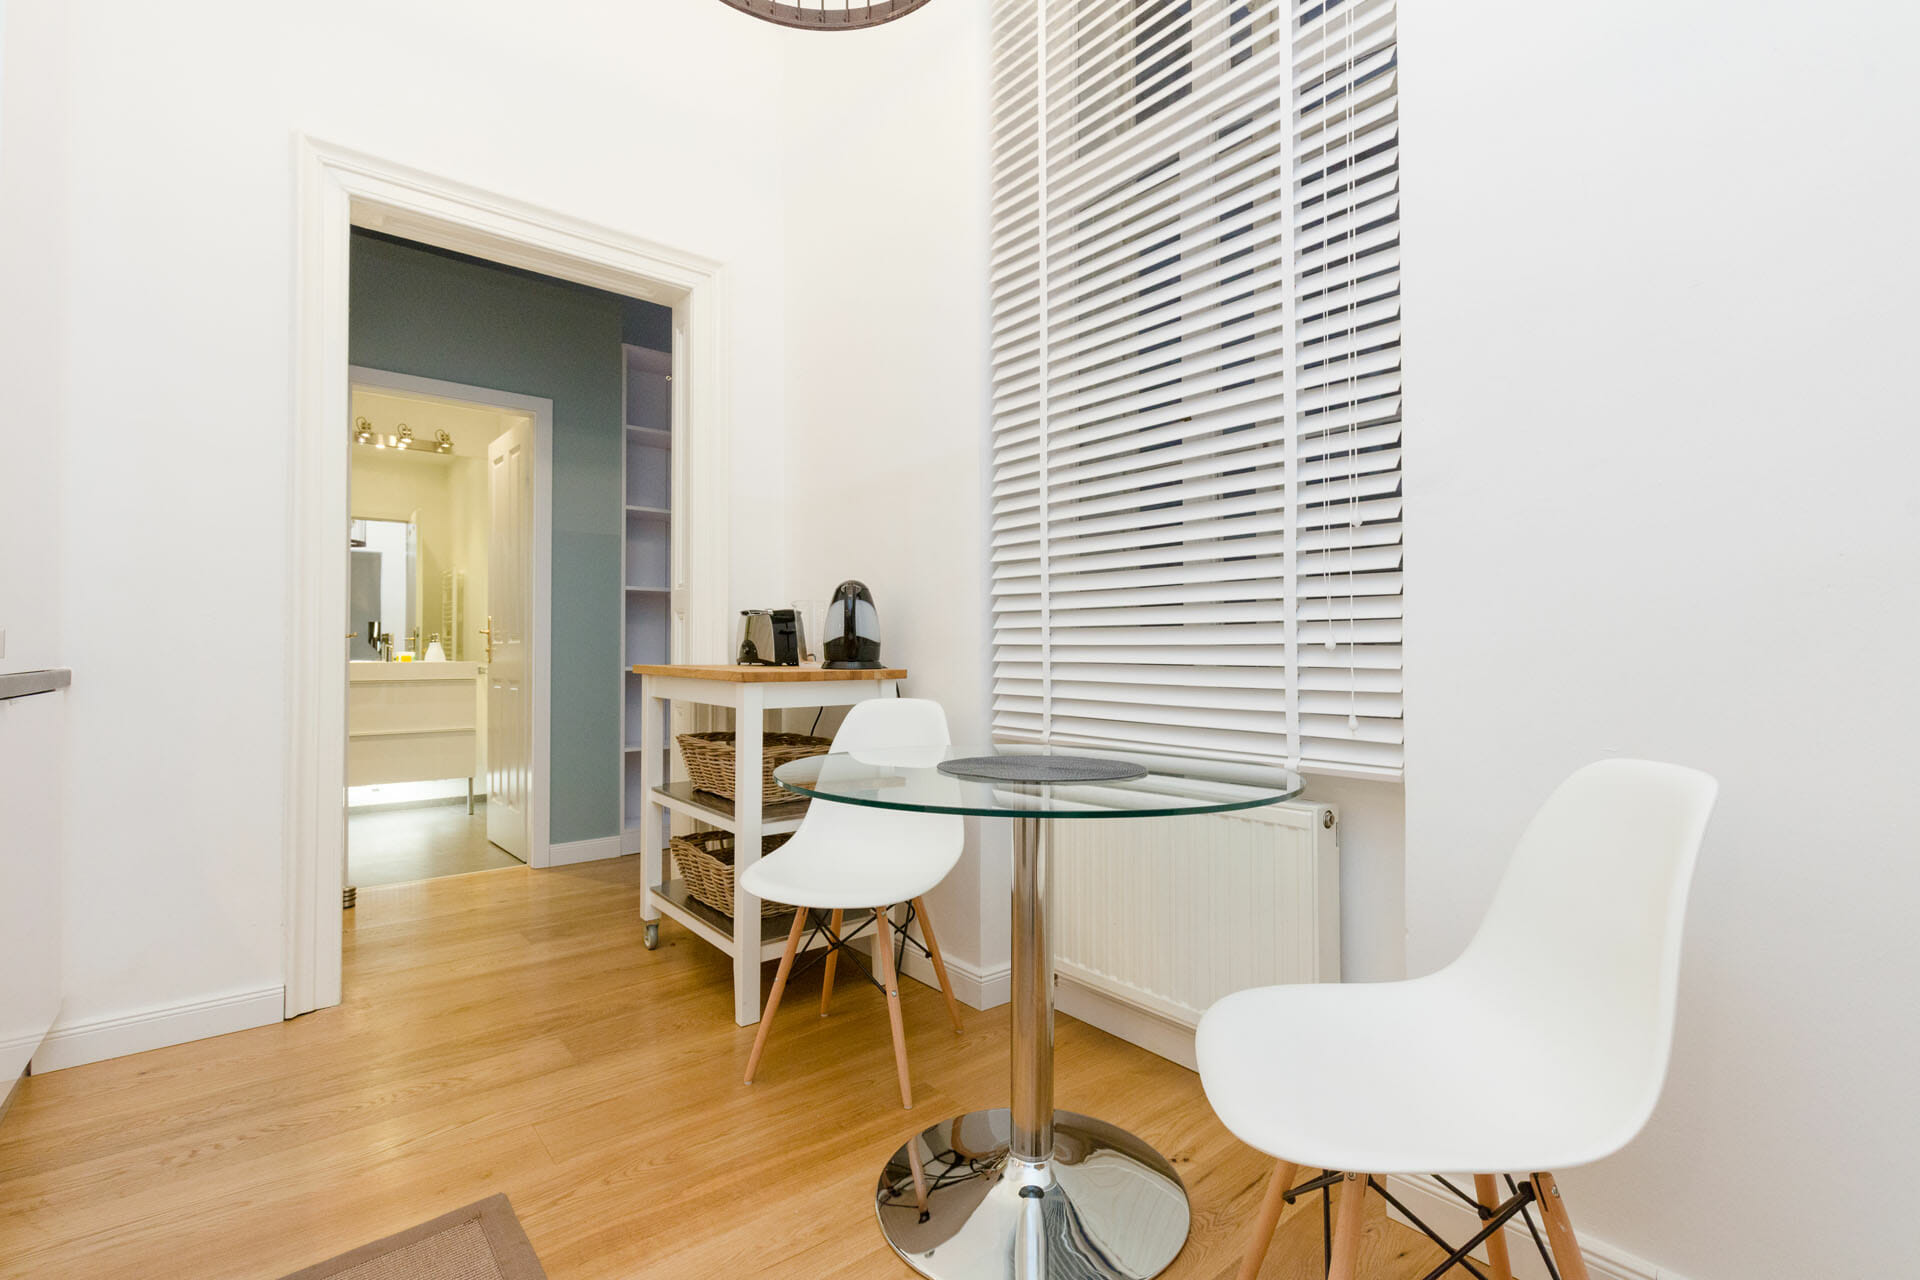 Prestige Apartments in Vienna. Pure Luxury in the Center of Vienna. First class 3 bedroom luxury apartment with space for up to 6 people - Live directly at the famous Stephansplatz.Graben 28.